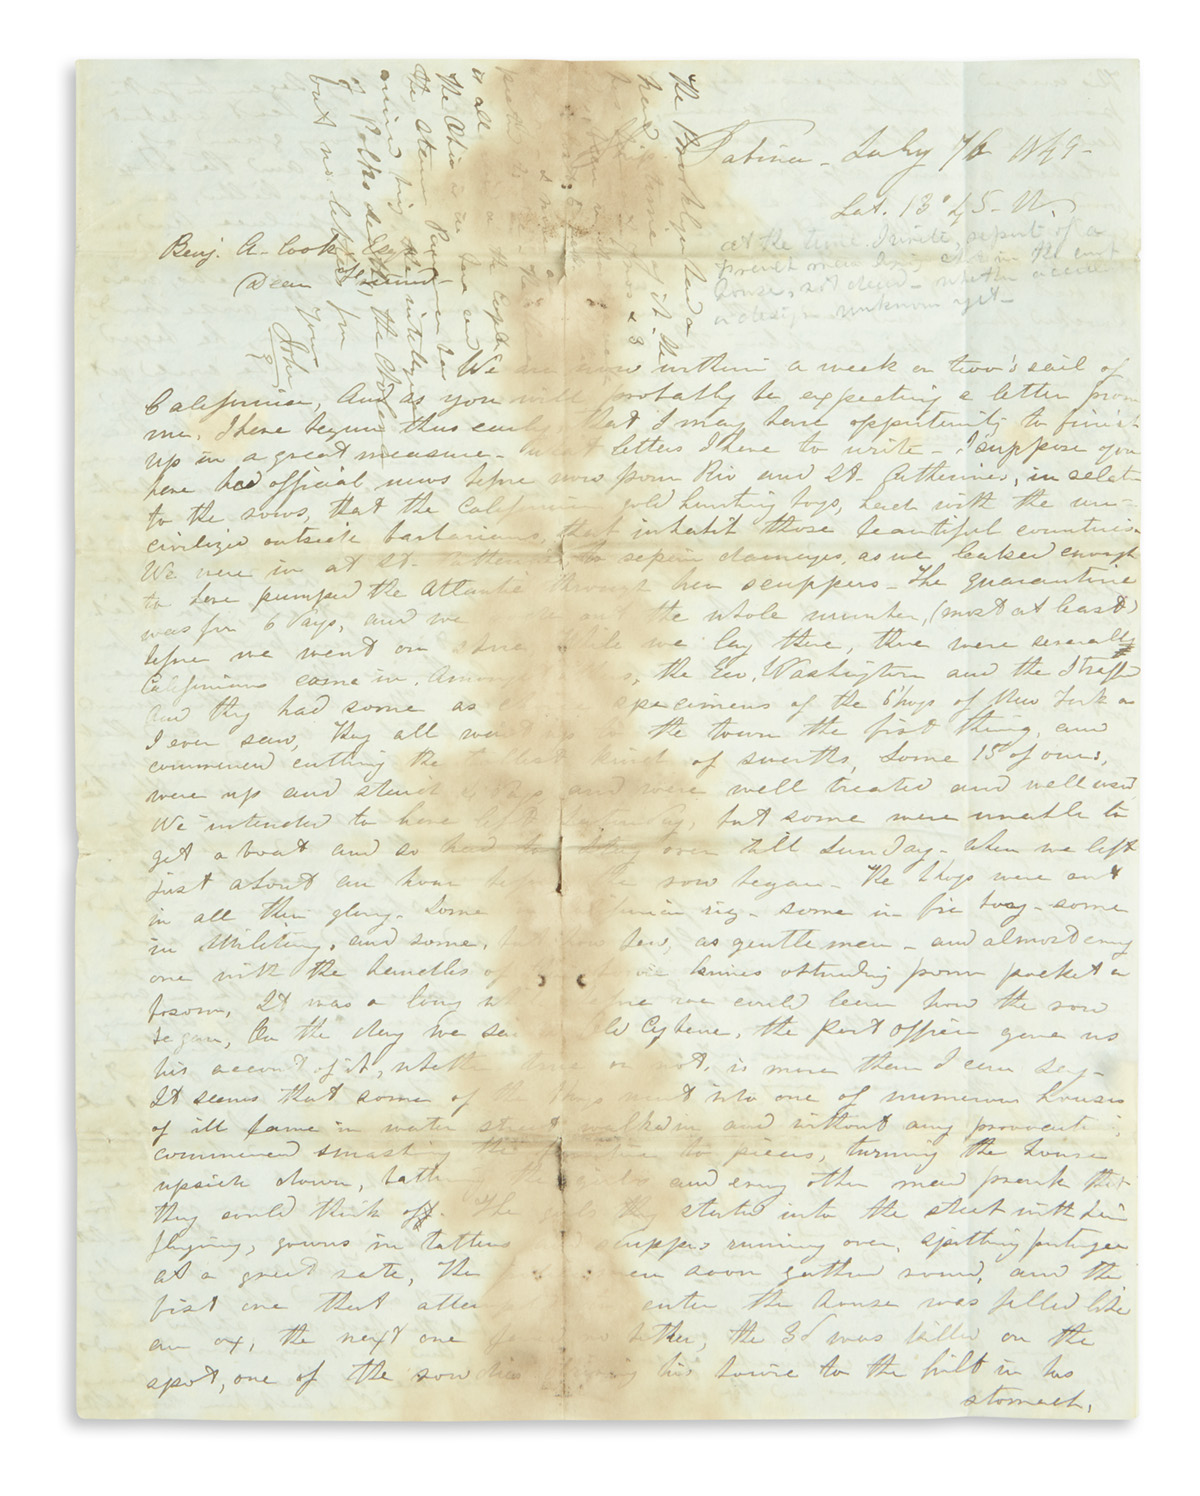 (CALIFORNIA.) Mills, John K. Letter describing a rowdy passage around the Horn, and his first impressions of Gold Rush San Francisco.